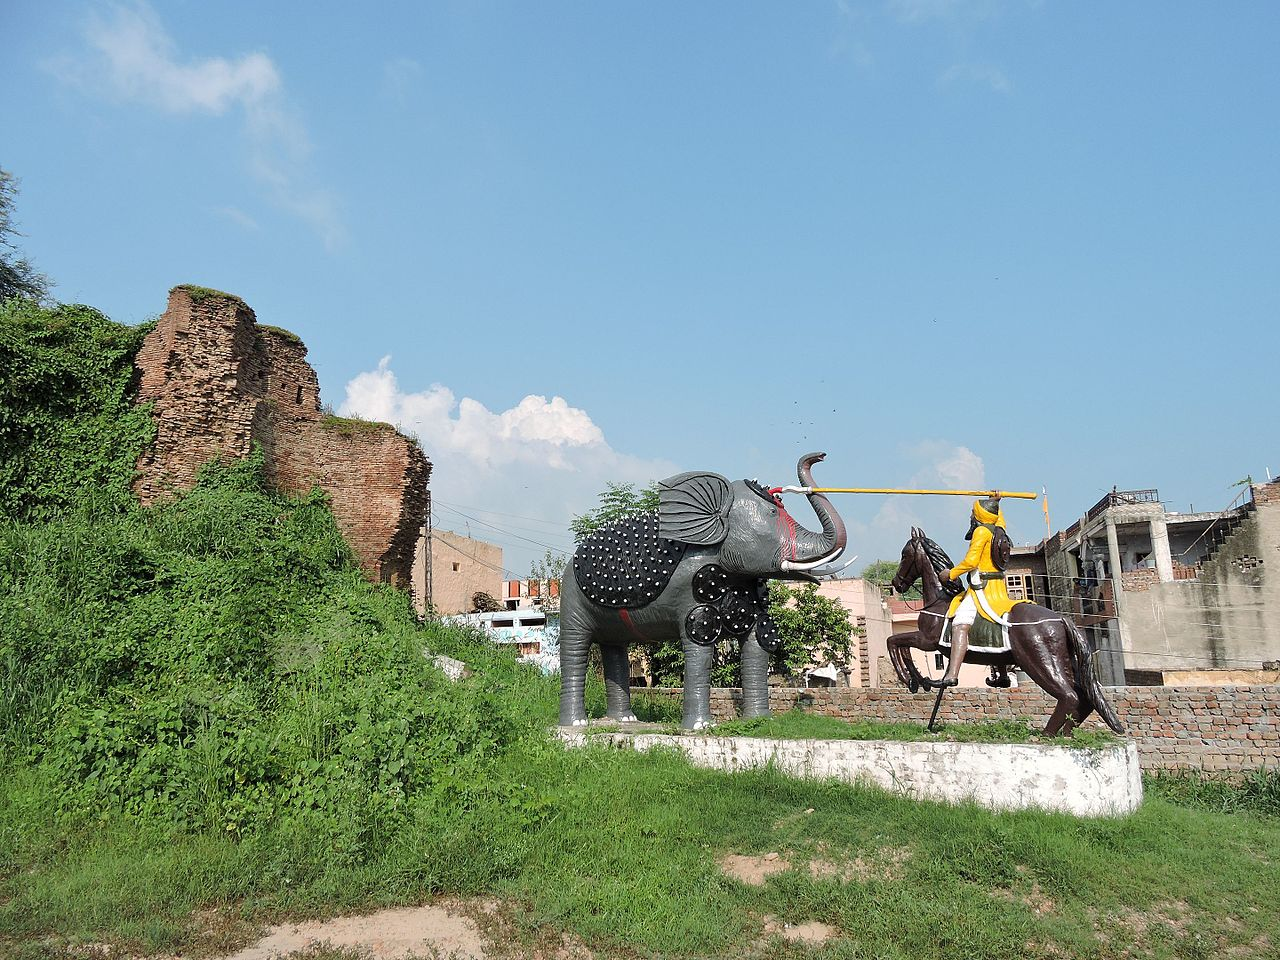 Best Time To Visit The Nagara Fort